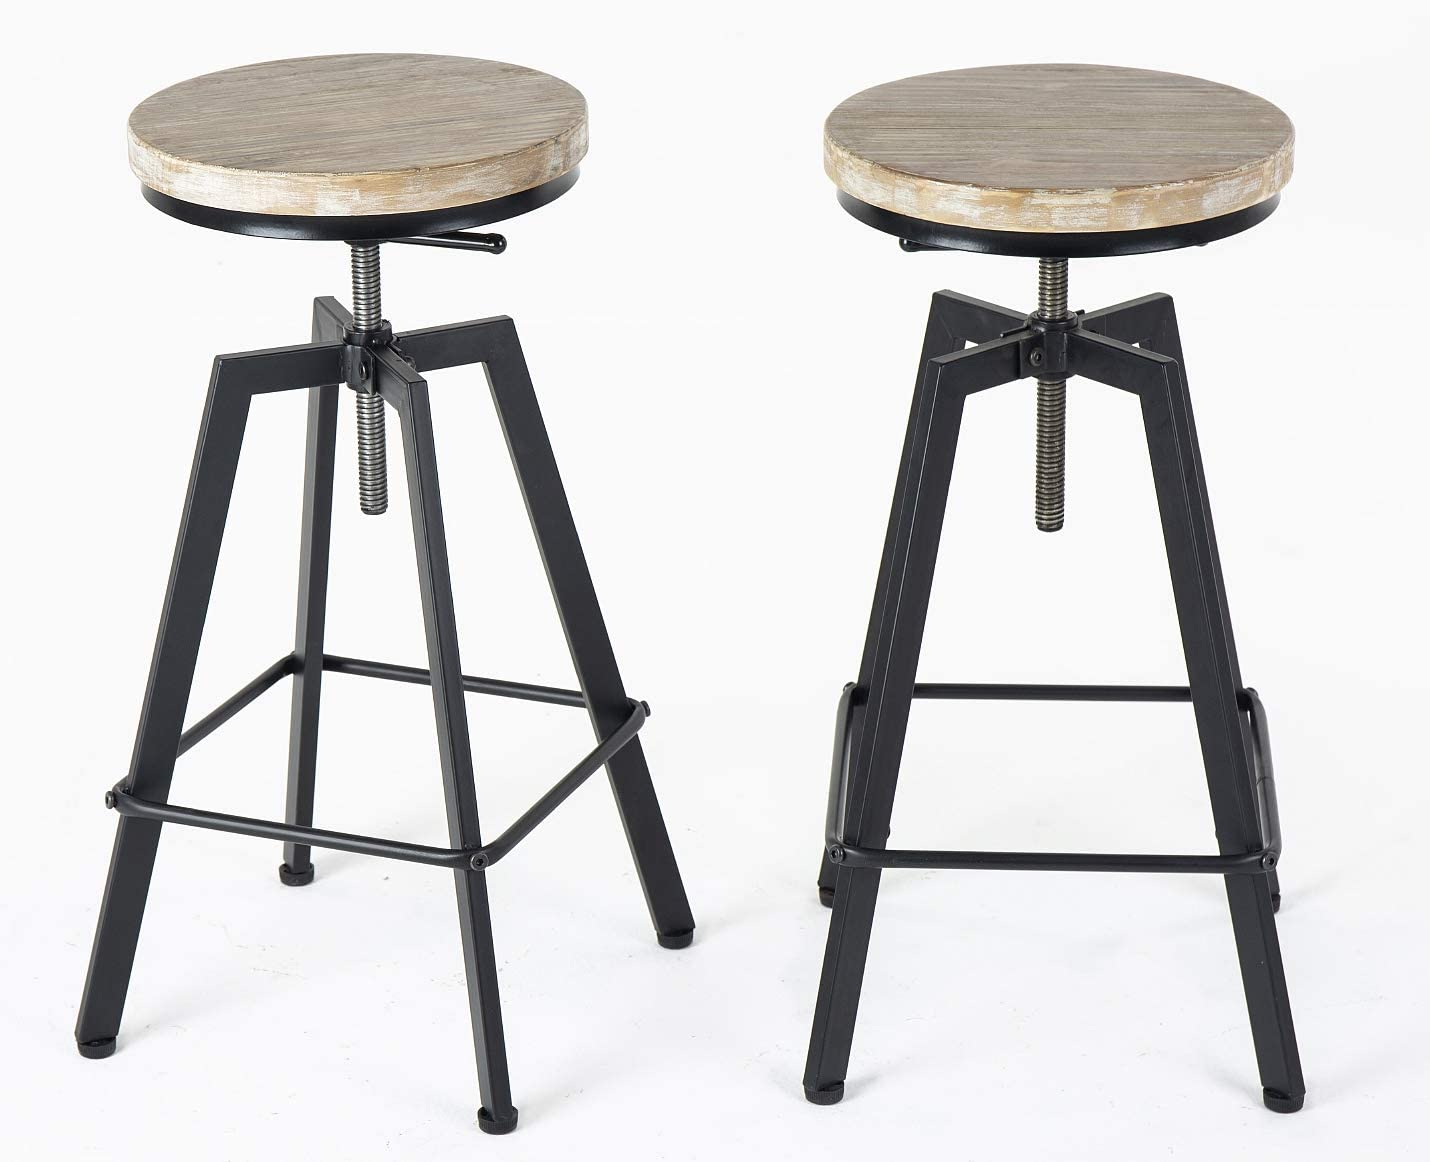 URANMOLE Industrial Bar Stools Chairs for Bistro Pub Breakfast Kitchen Coffee, Round Wood Seat, Metal Legs, Bar Counter Height Adjustable Swivel, Set of 2